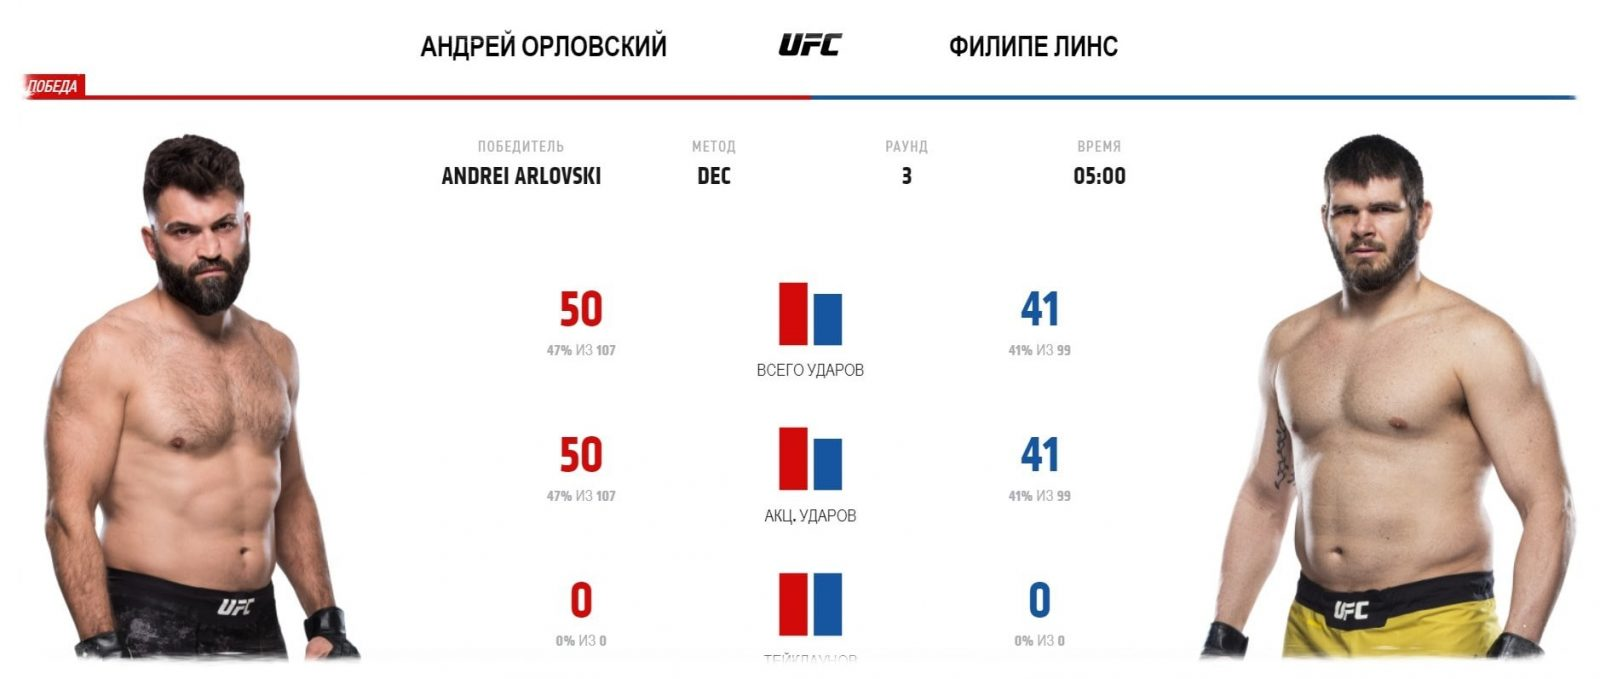 andrej-orlovskij-filipe-lins-video-boya-ufc-fight-night-smith-vs-teixeira